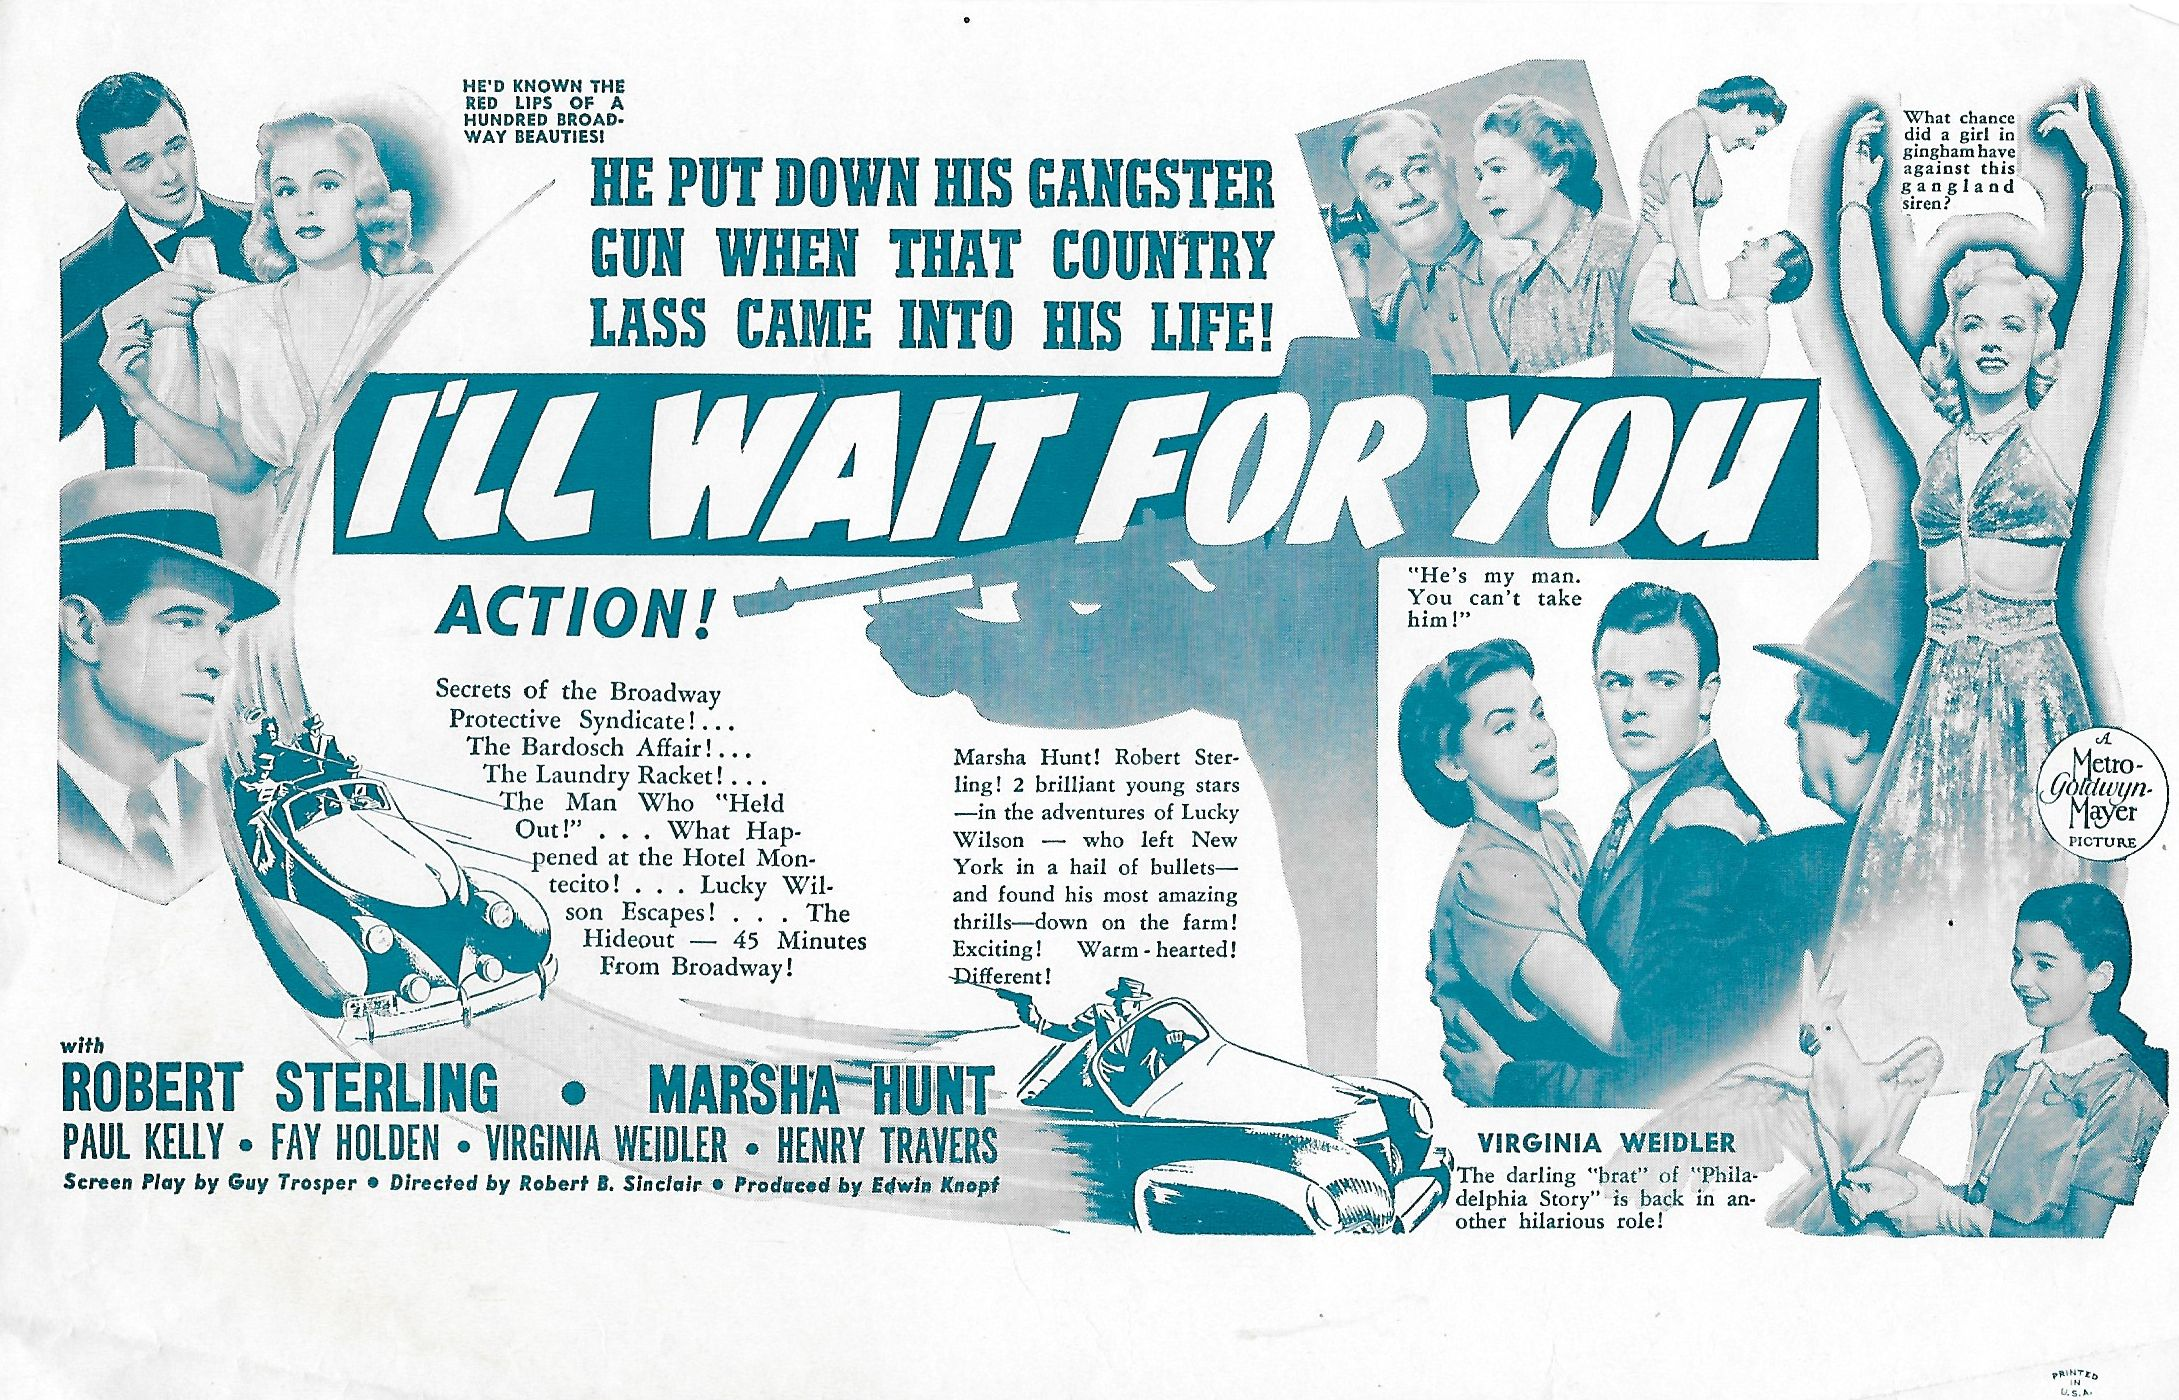 Fay Holden, Carol Hughes, Marsha Hunt, Paul Kelly, Robert Sterling, Henry Travers, and Virginia Weidler in I'll Wait for You (1941)